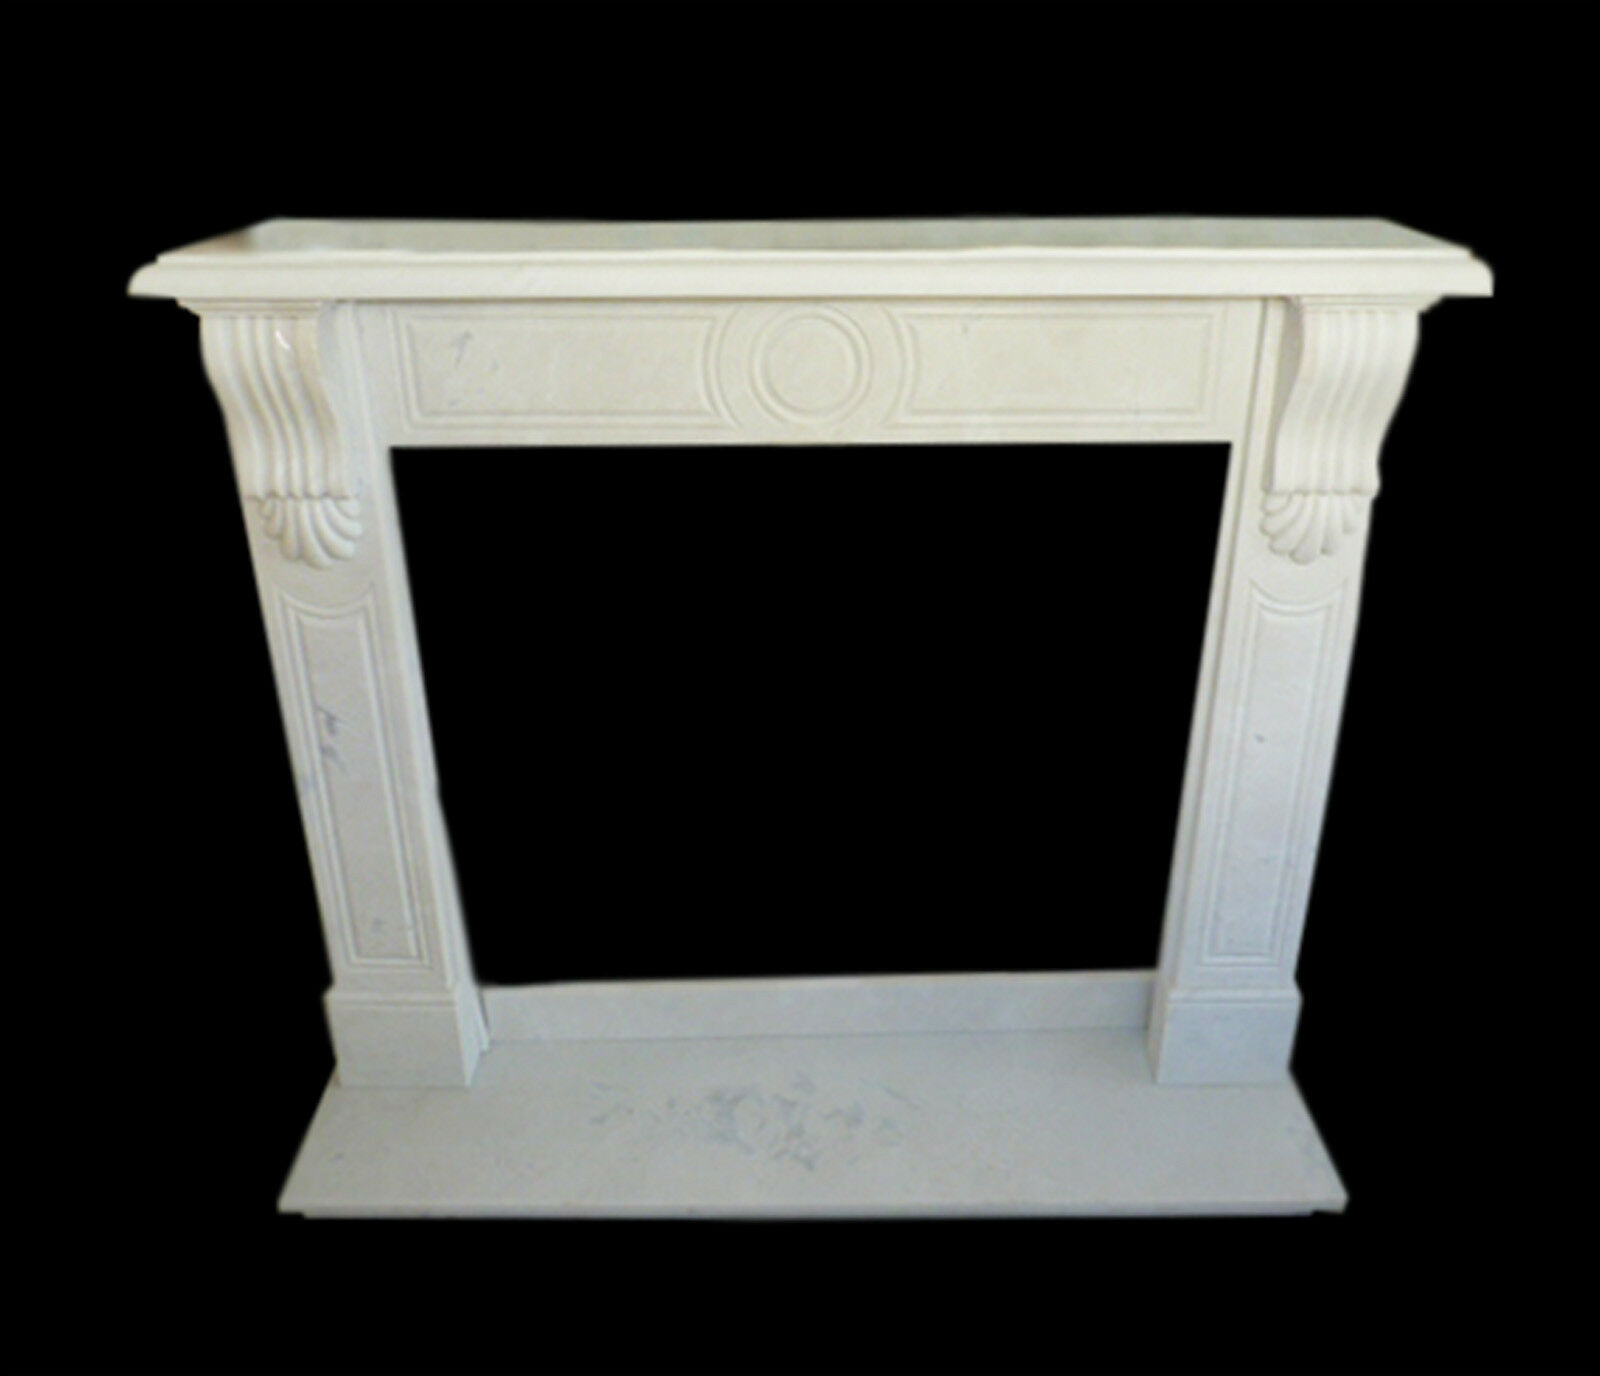 Cornice Caminetto Camino in Marmo Bianco Classico Old Fireplace Marble ...